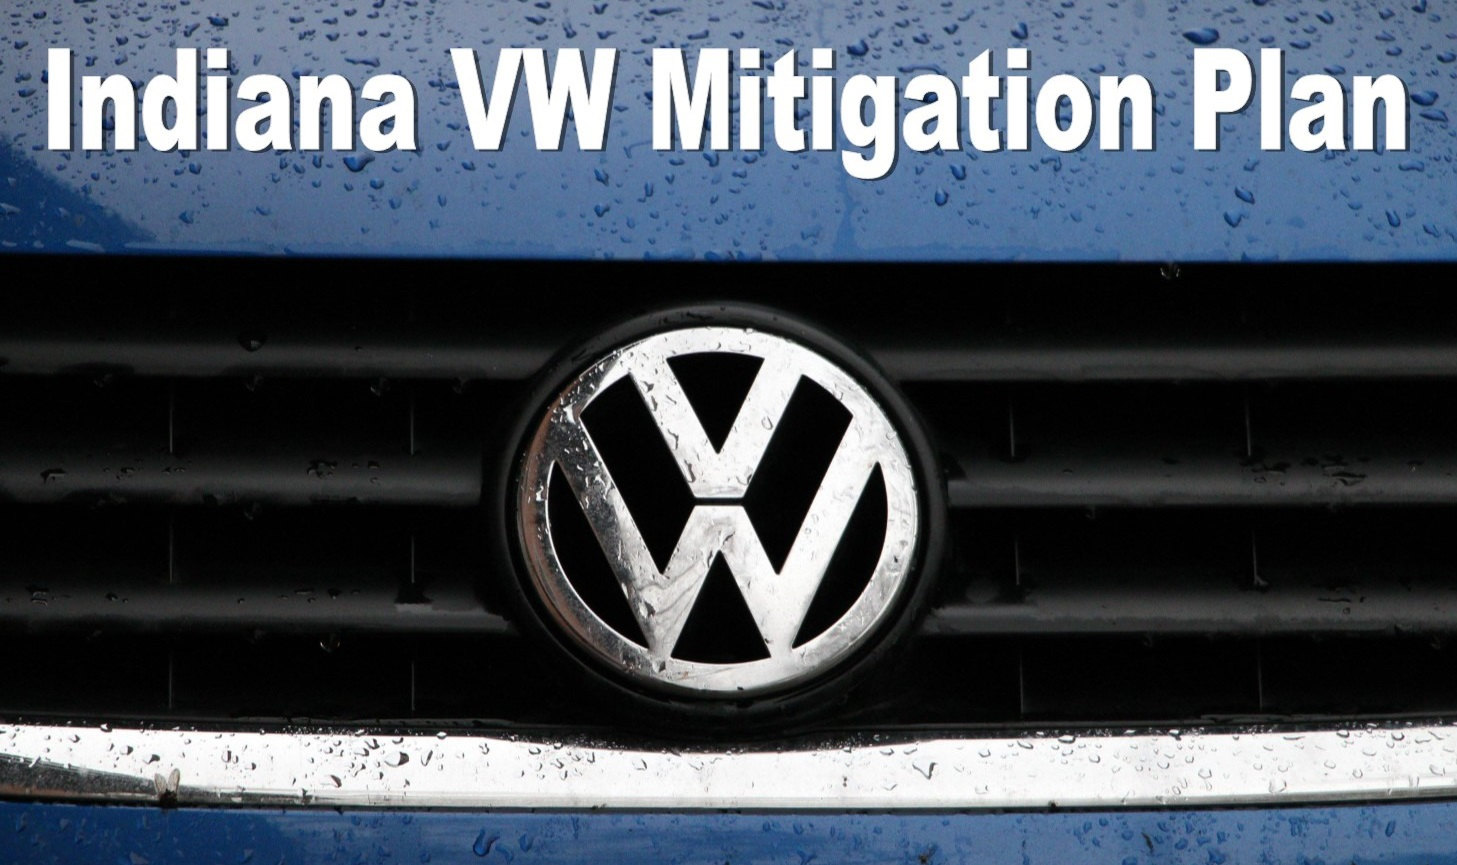 Indiana VW Mitigation Trust Program